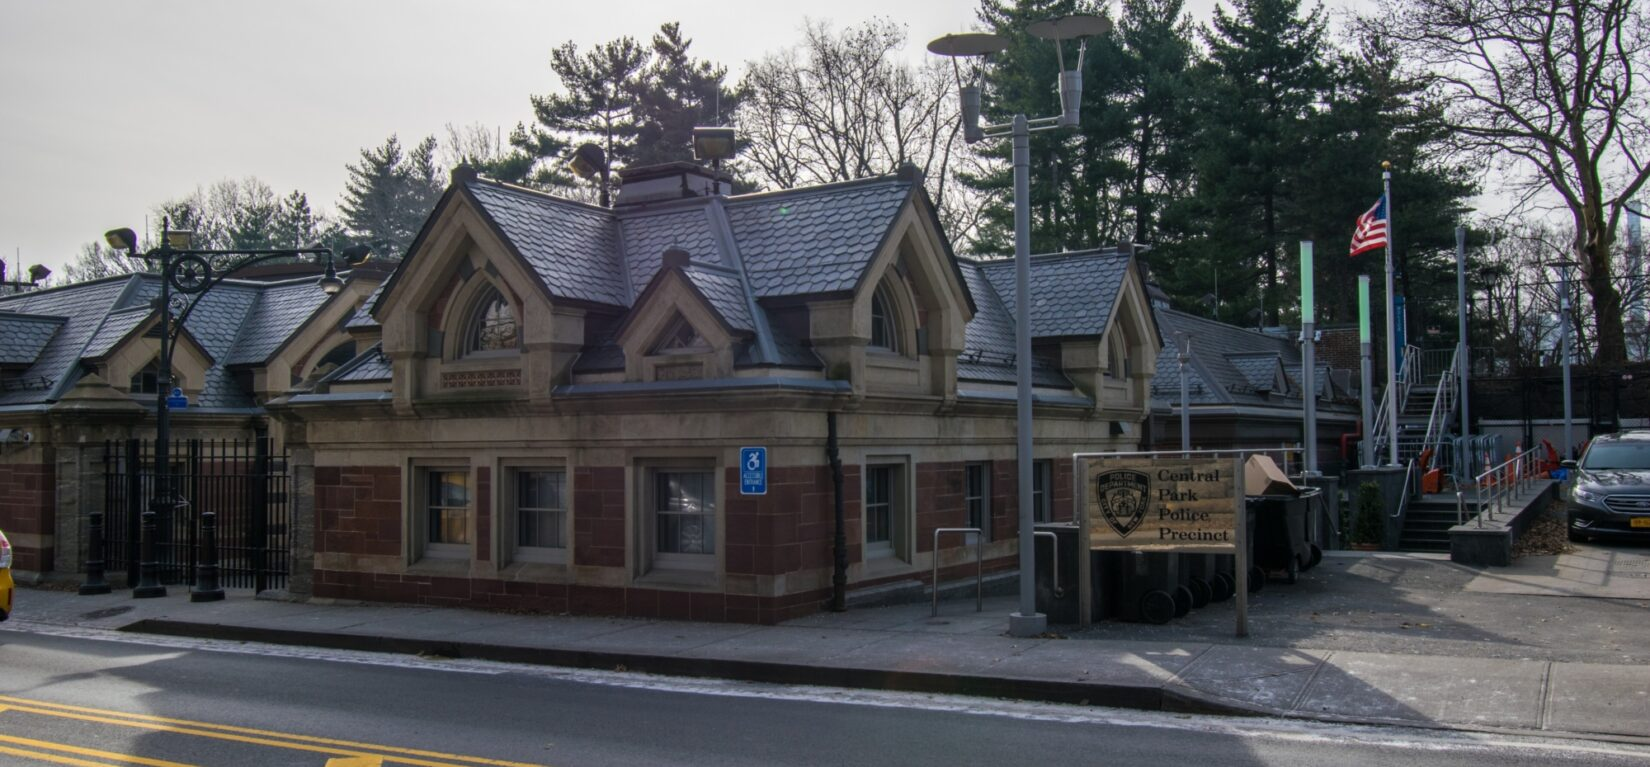 A view of the Police Precinct, which was once a horse stable